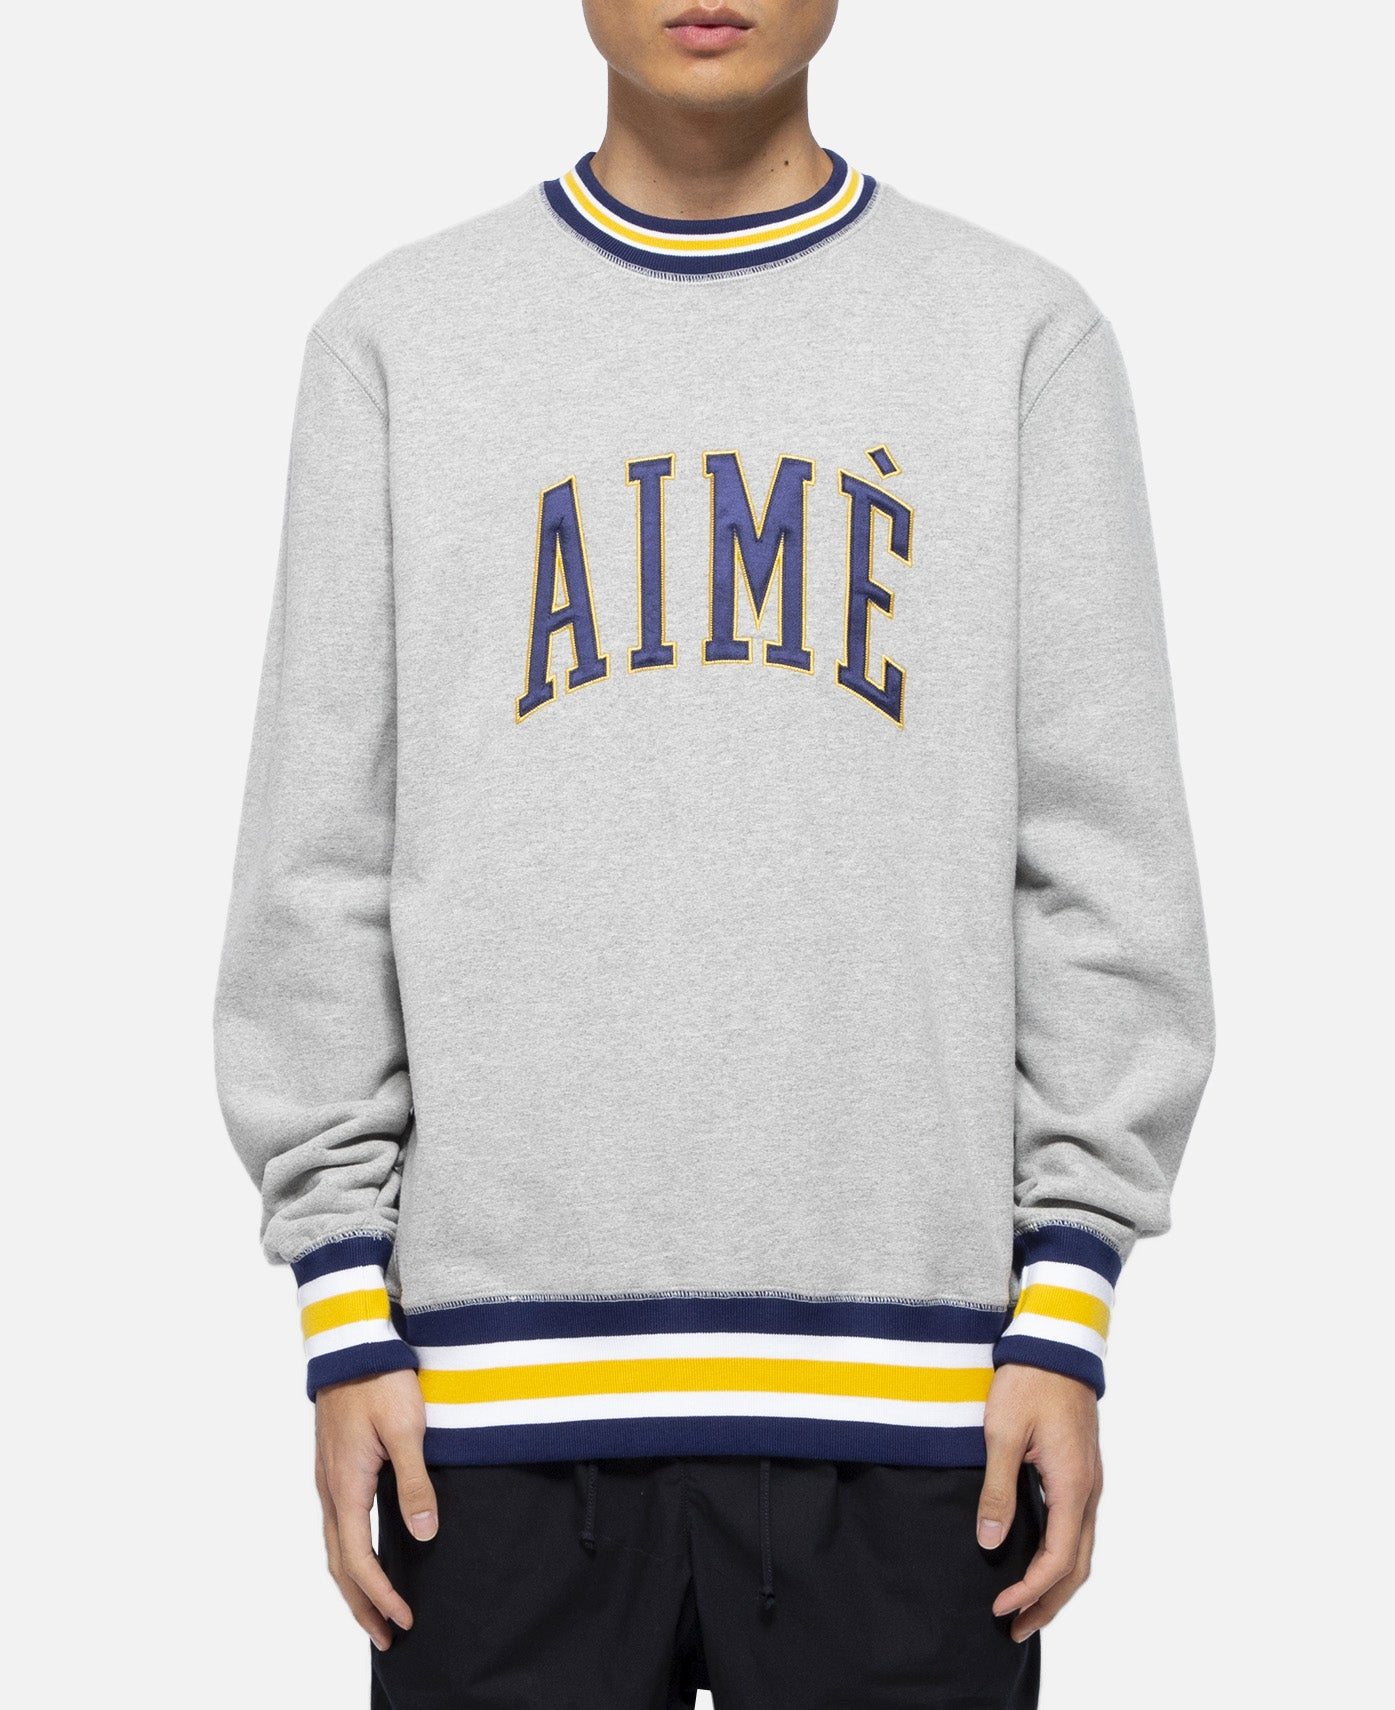 20oz Terry Collegiate Crewneck (Grey)